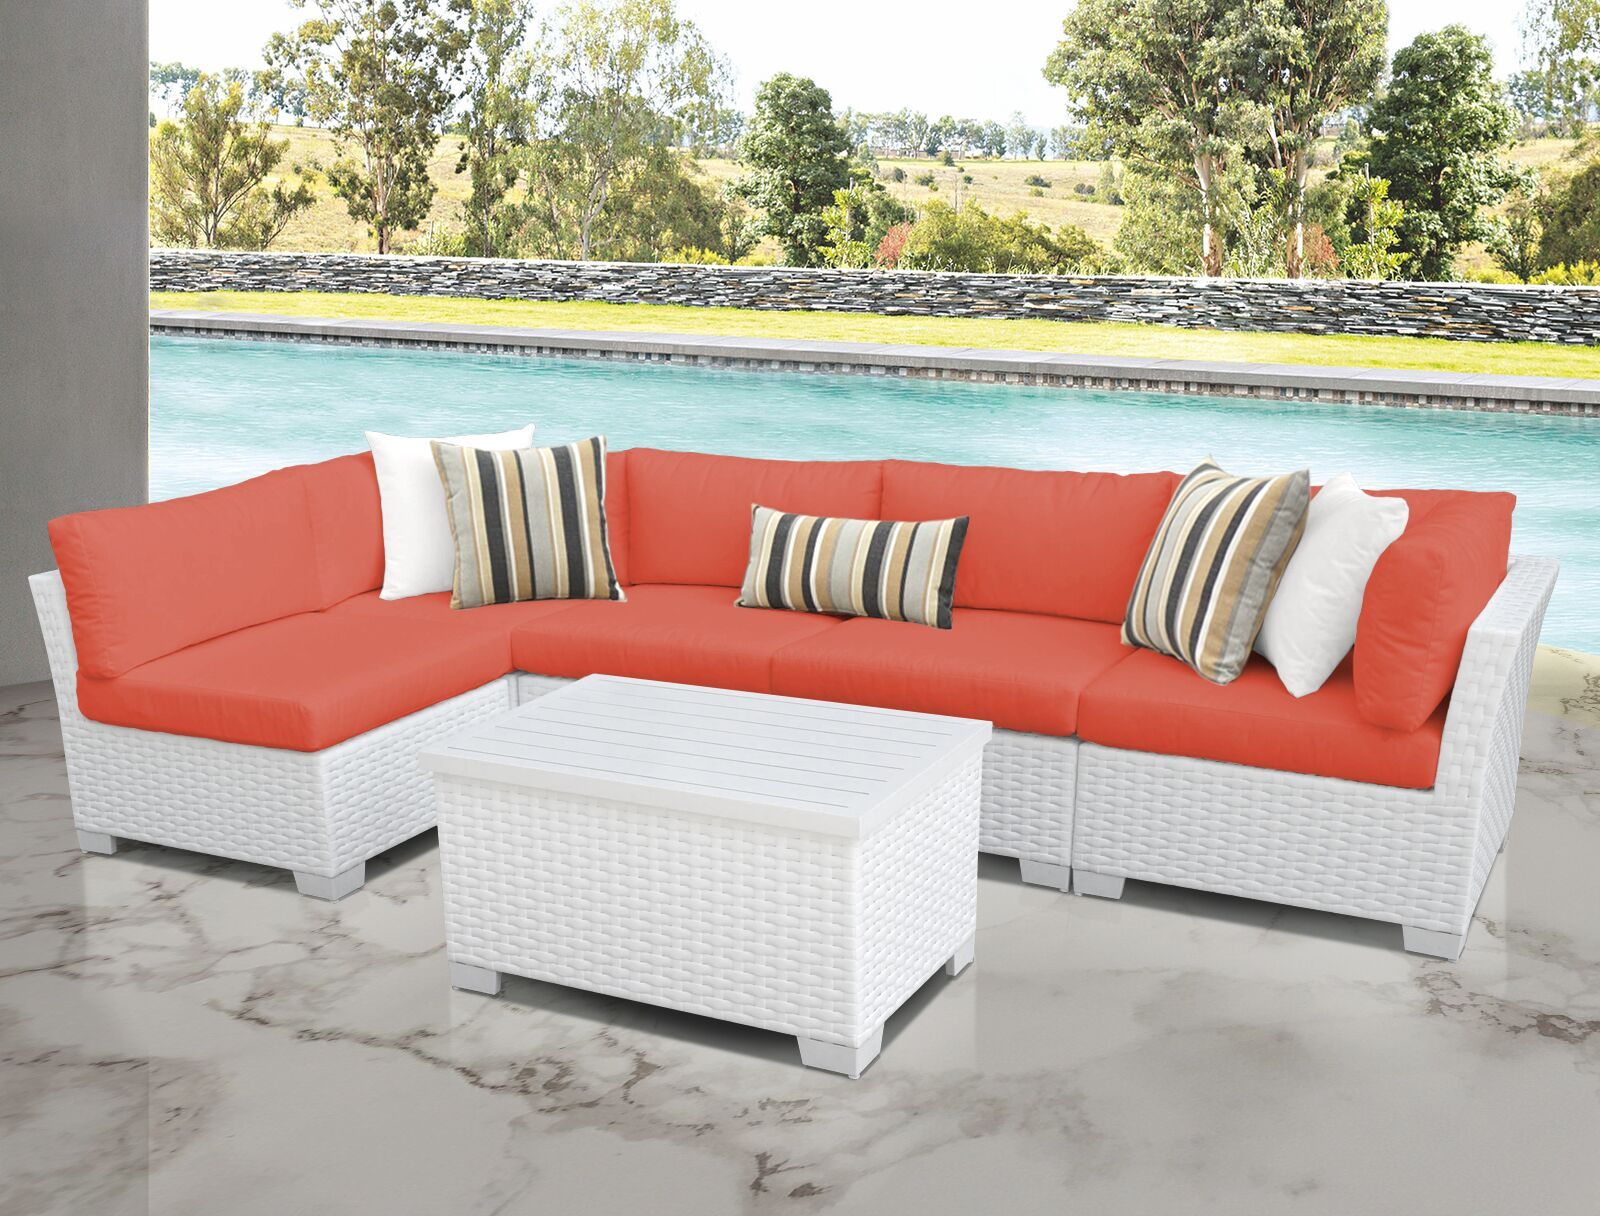 Monaco 6 Piece Sectional Set with Cushions Cushion Color (Fabric): Tangerine